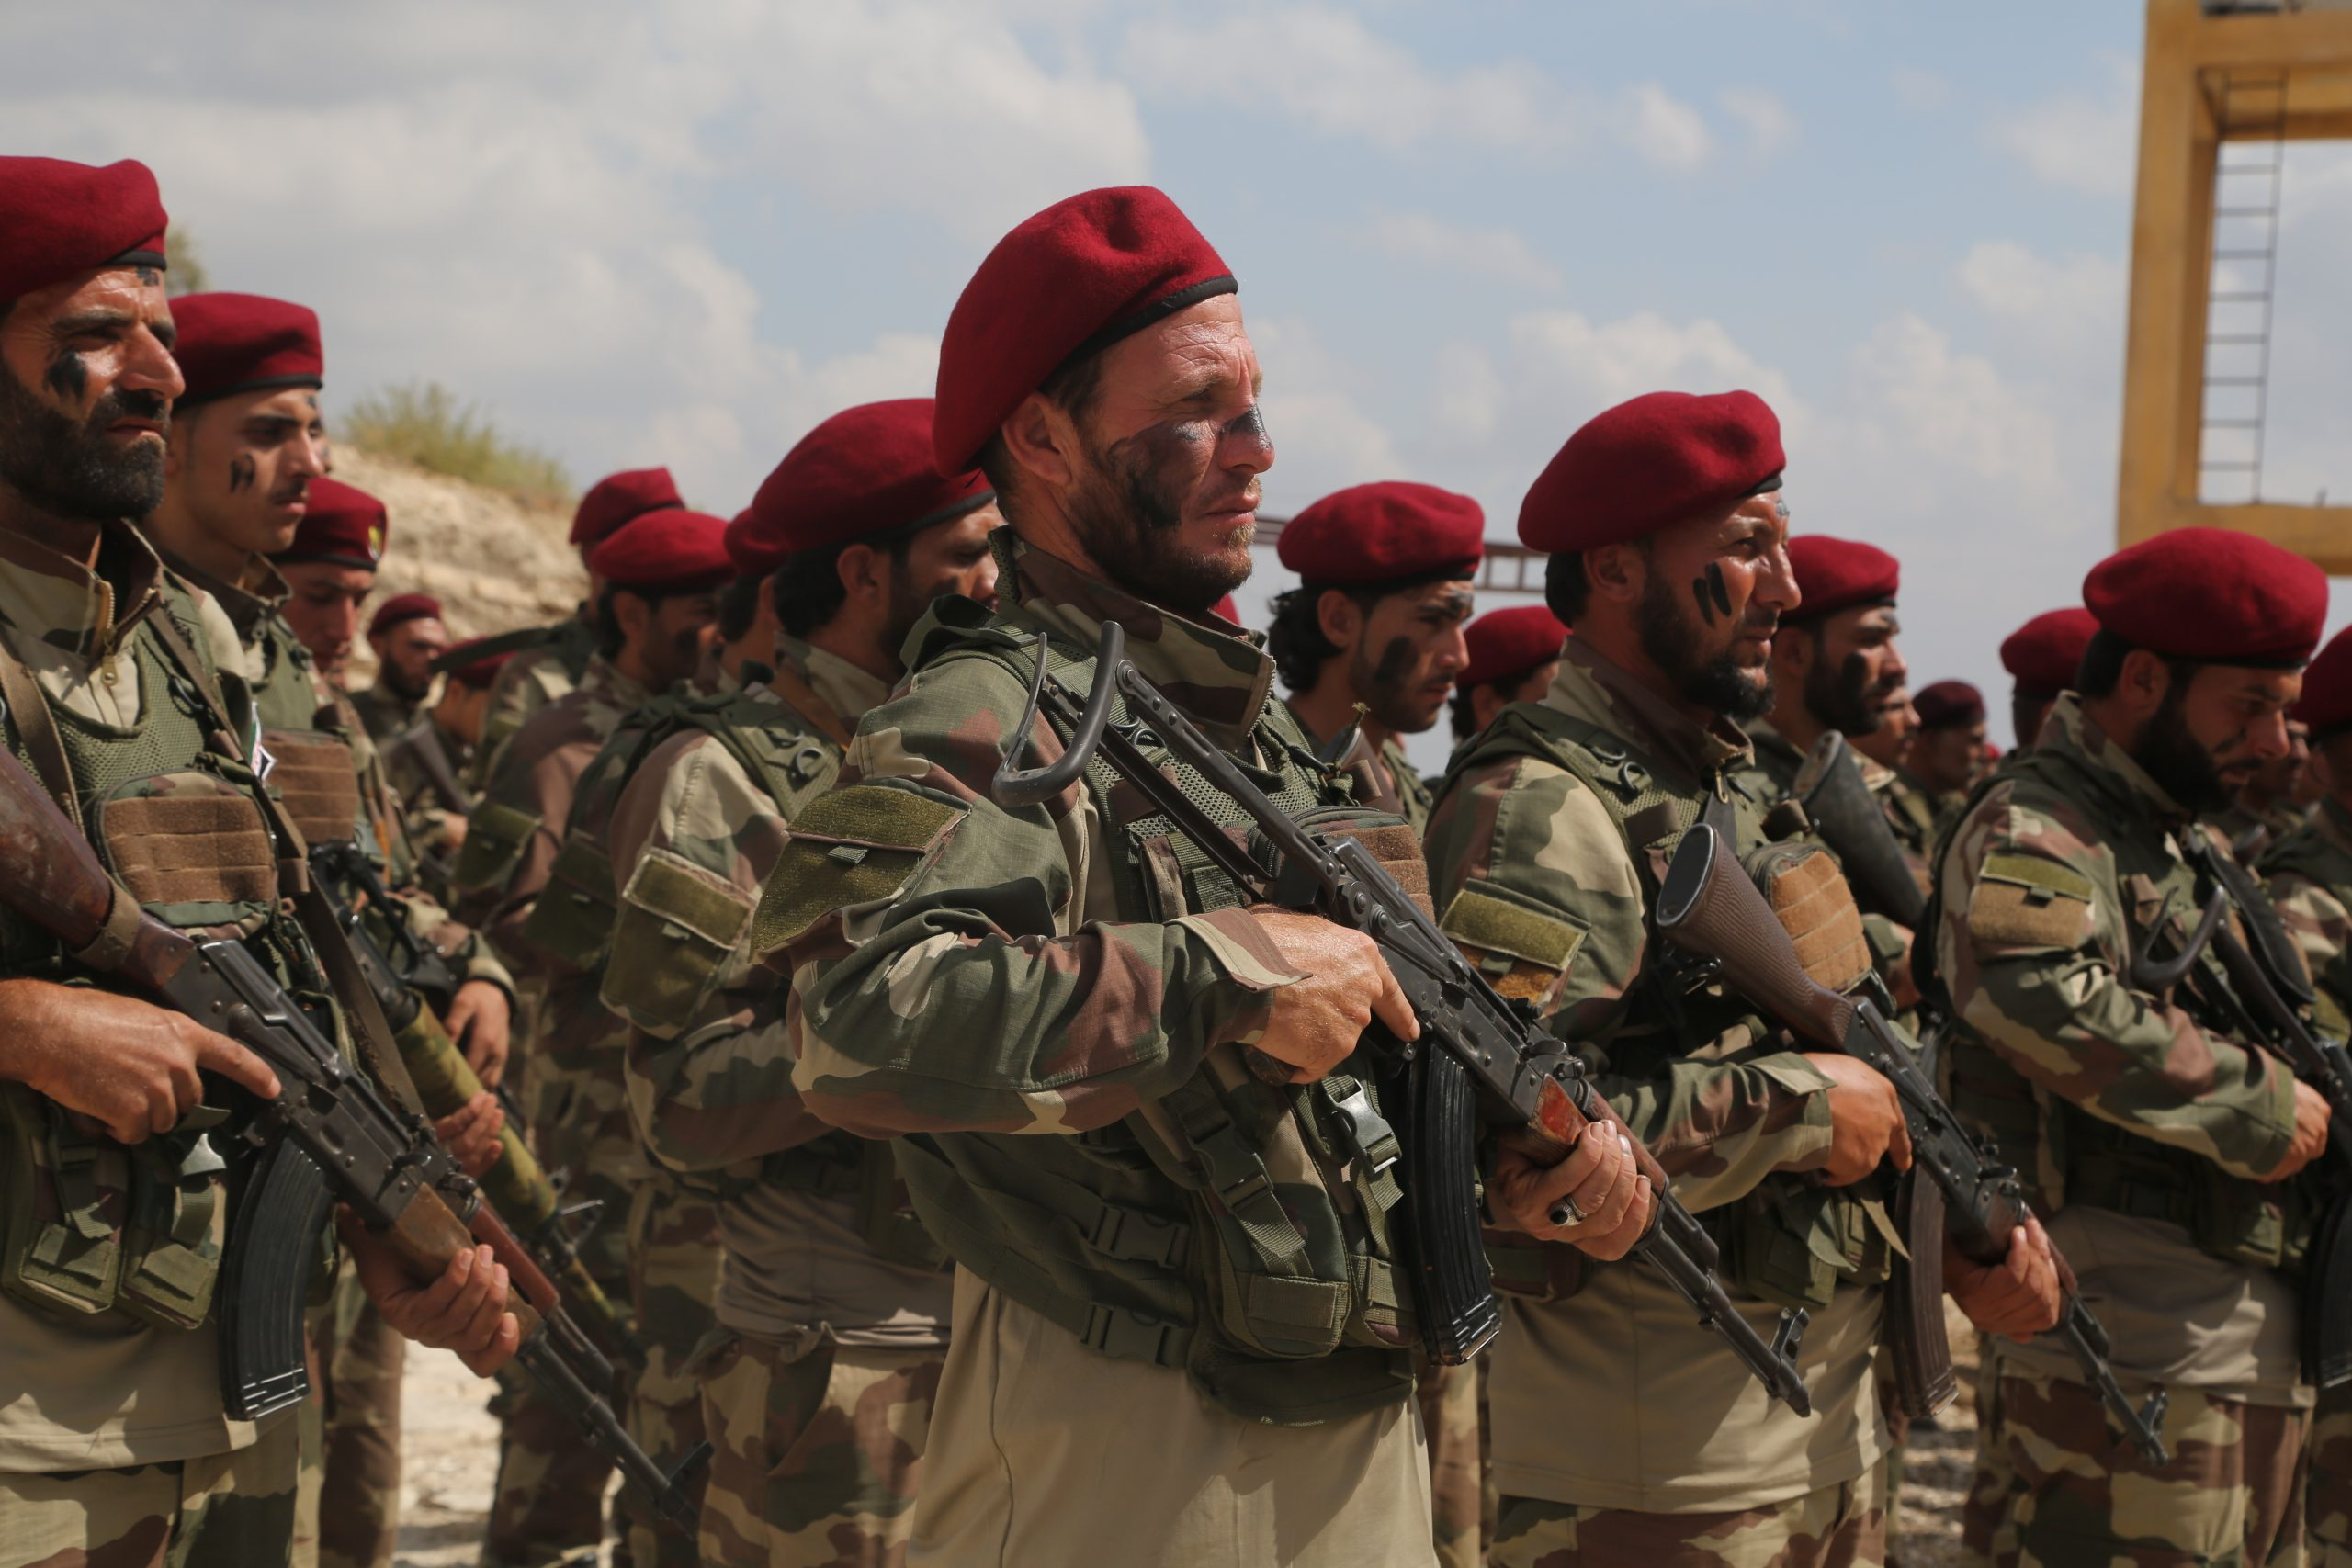 Kurdish militias launch a counteroffensive to recover Ras al Ain from Turkey's allied rebels